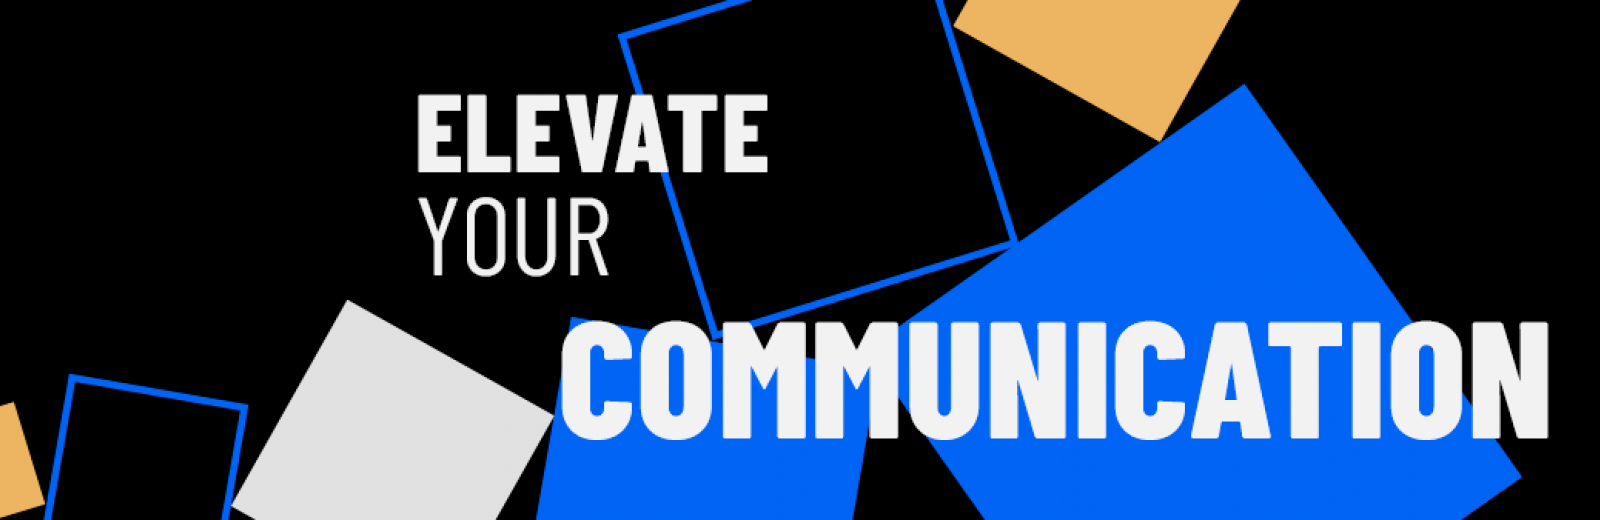 Elevate your communication